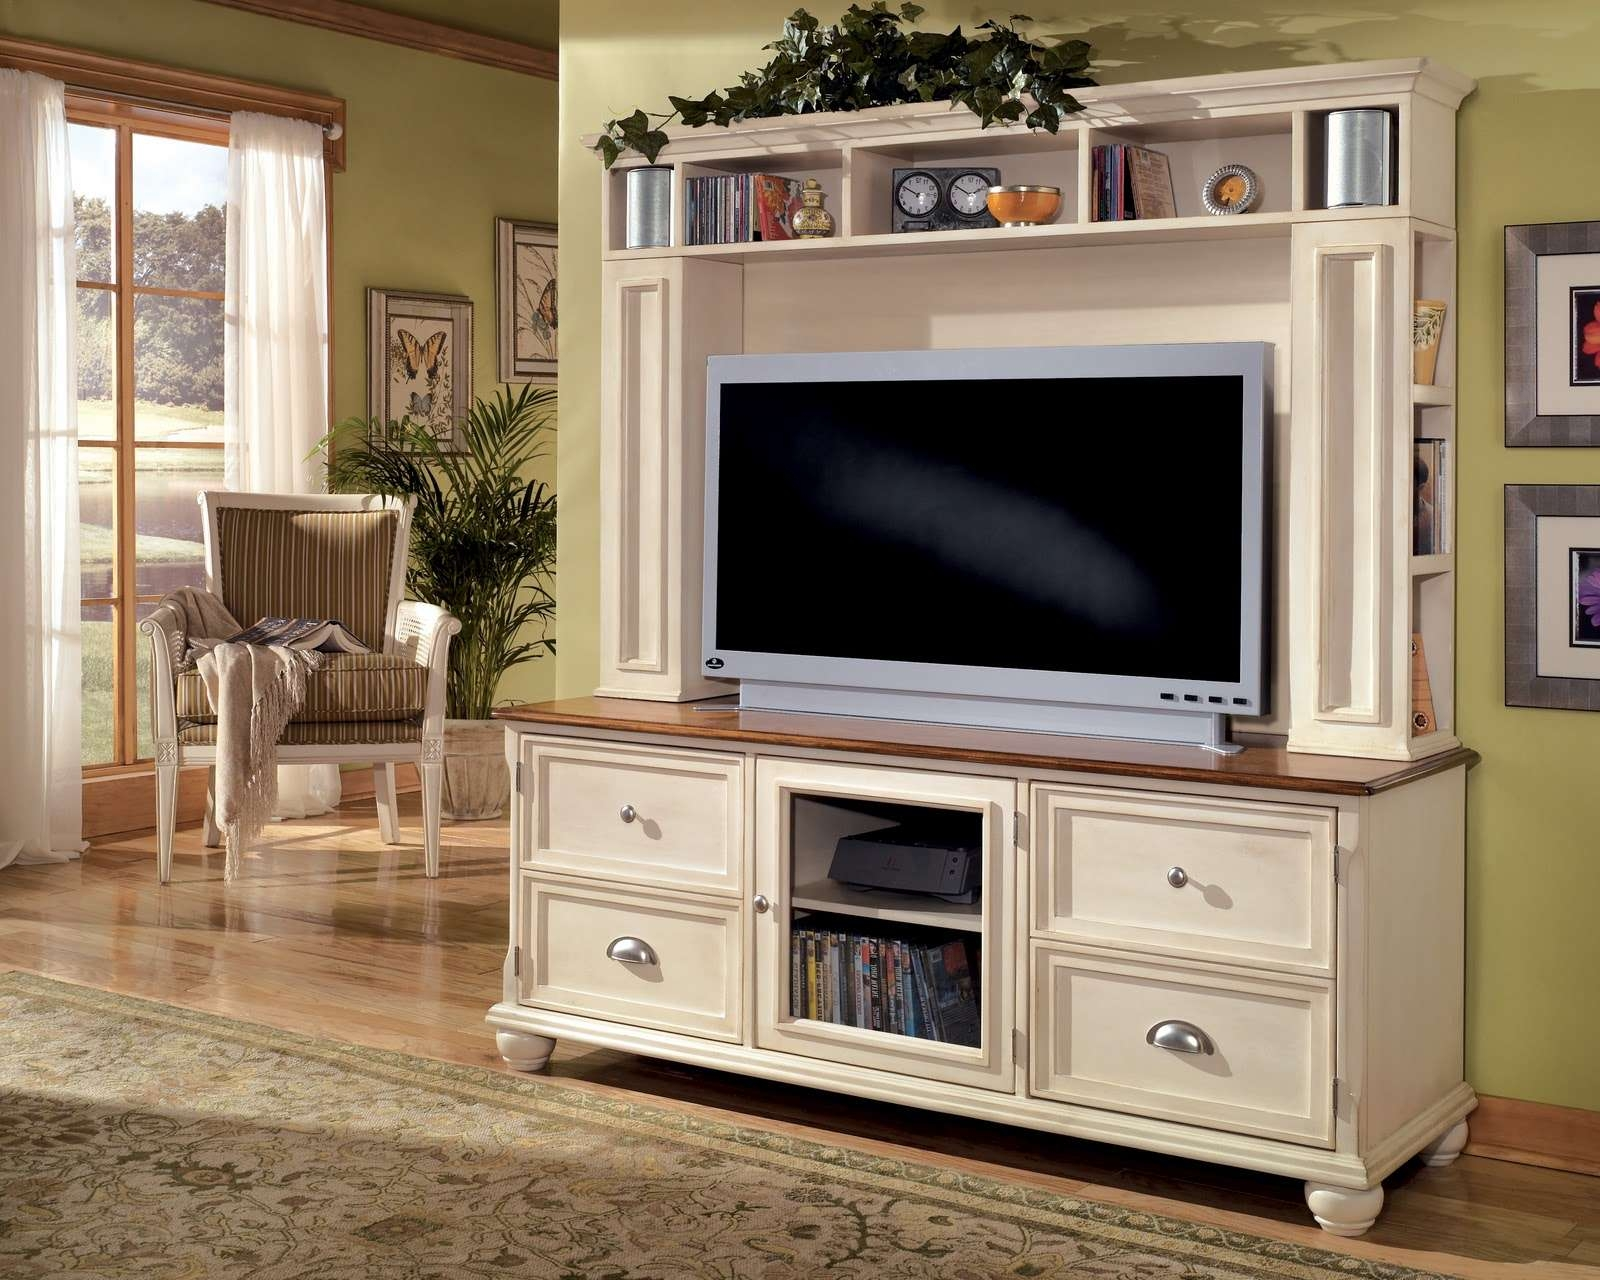 Large White Wooden Tall Tv Stand For Bedroom With Racks And With Large White Tv Stands (View 8 of 15)